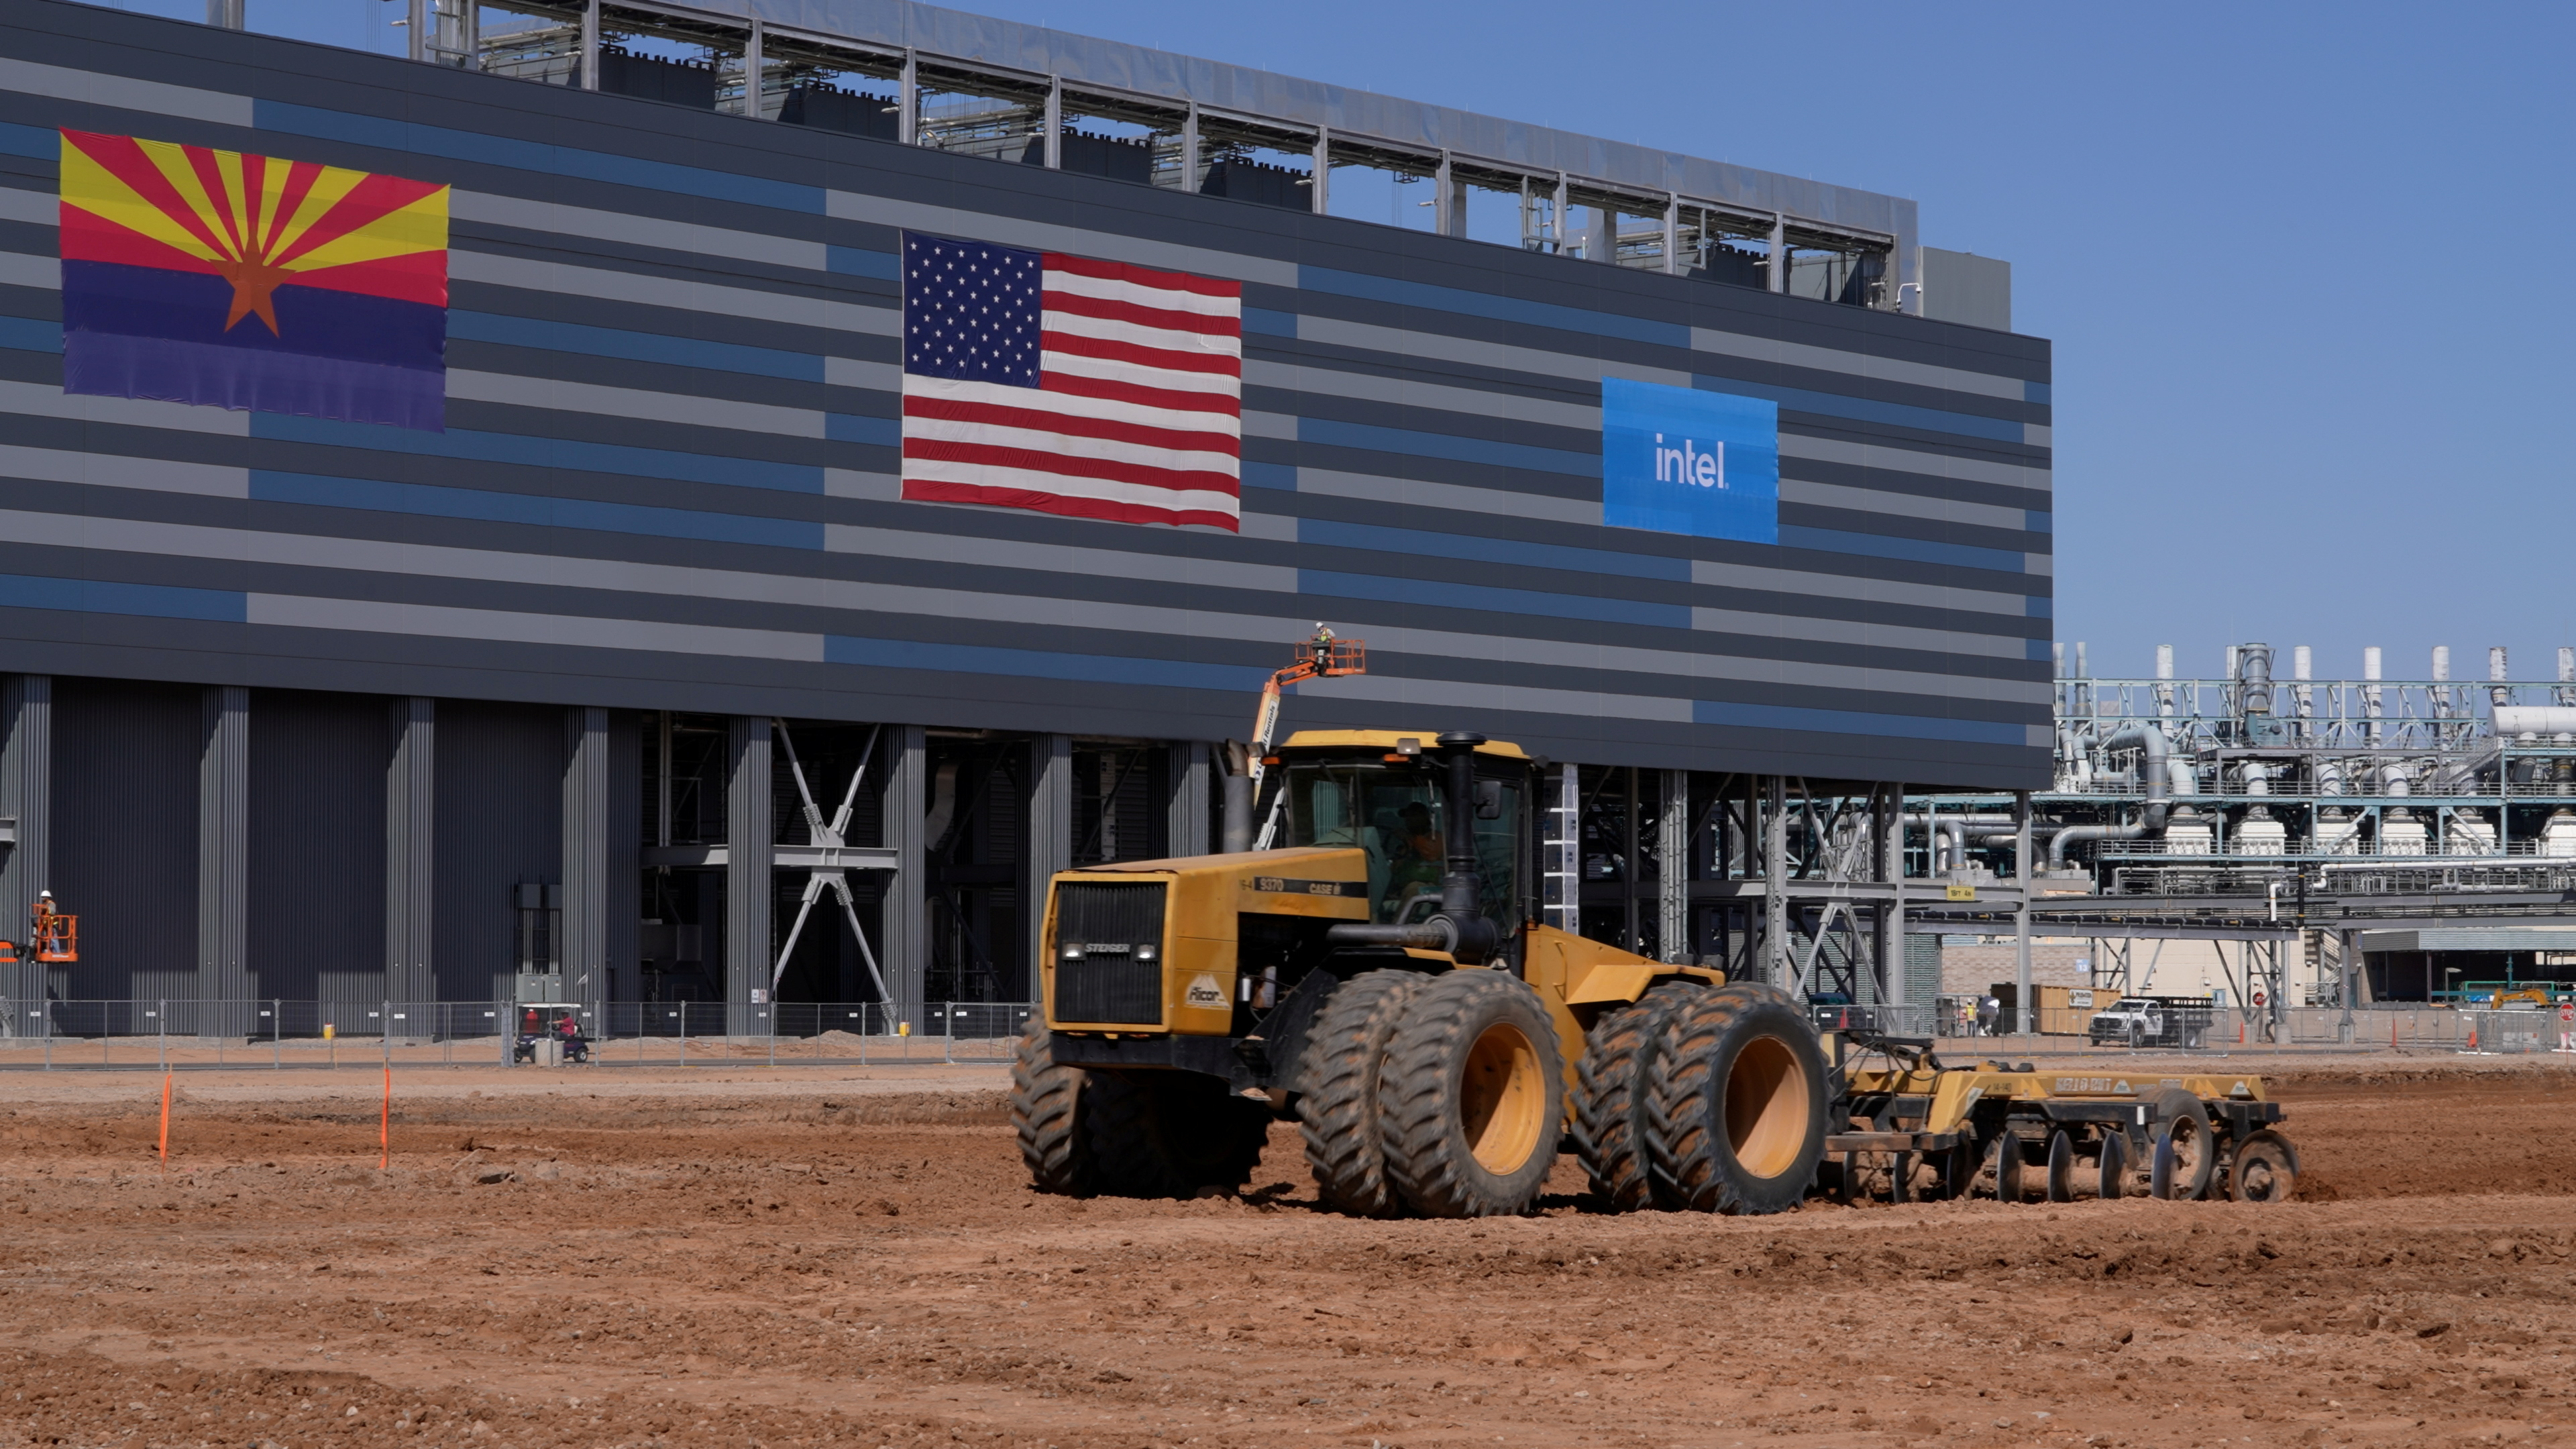 A handout photo shows construction equipment at the site of a future Intel Corp chip factory in Chandler, Arizona, U.S., September 23, 2021. Picture taken September 23, 2021.  Courtesy of Intel Corp/Handout via REUTERS.